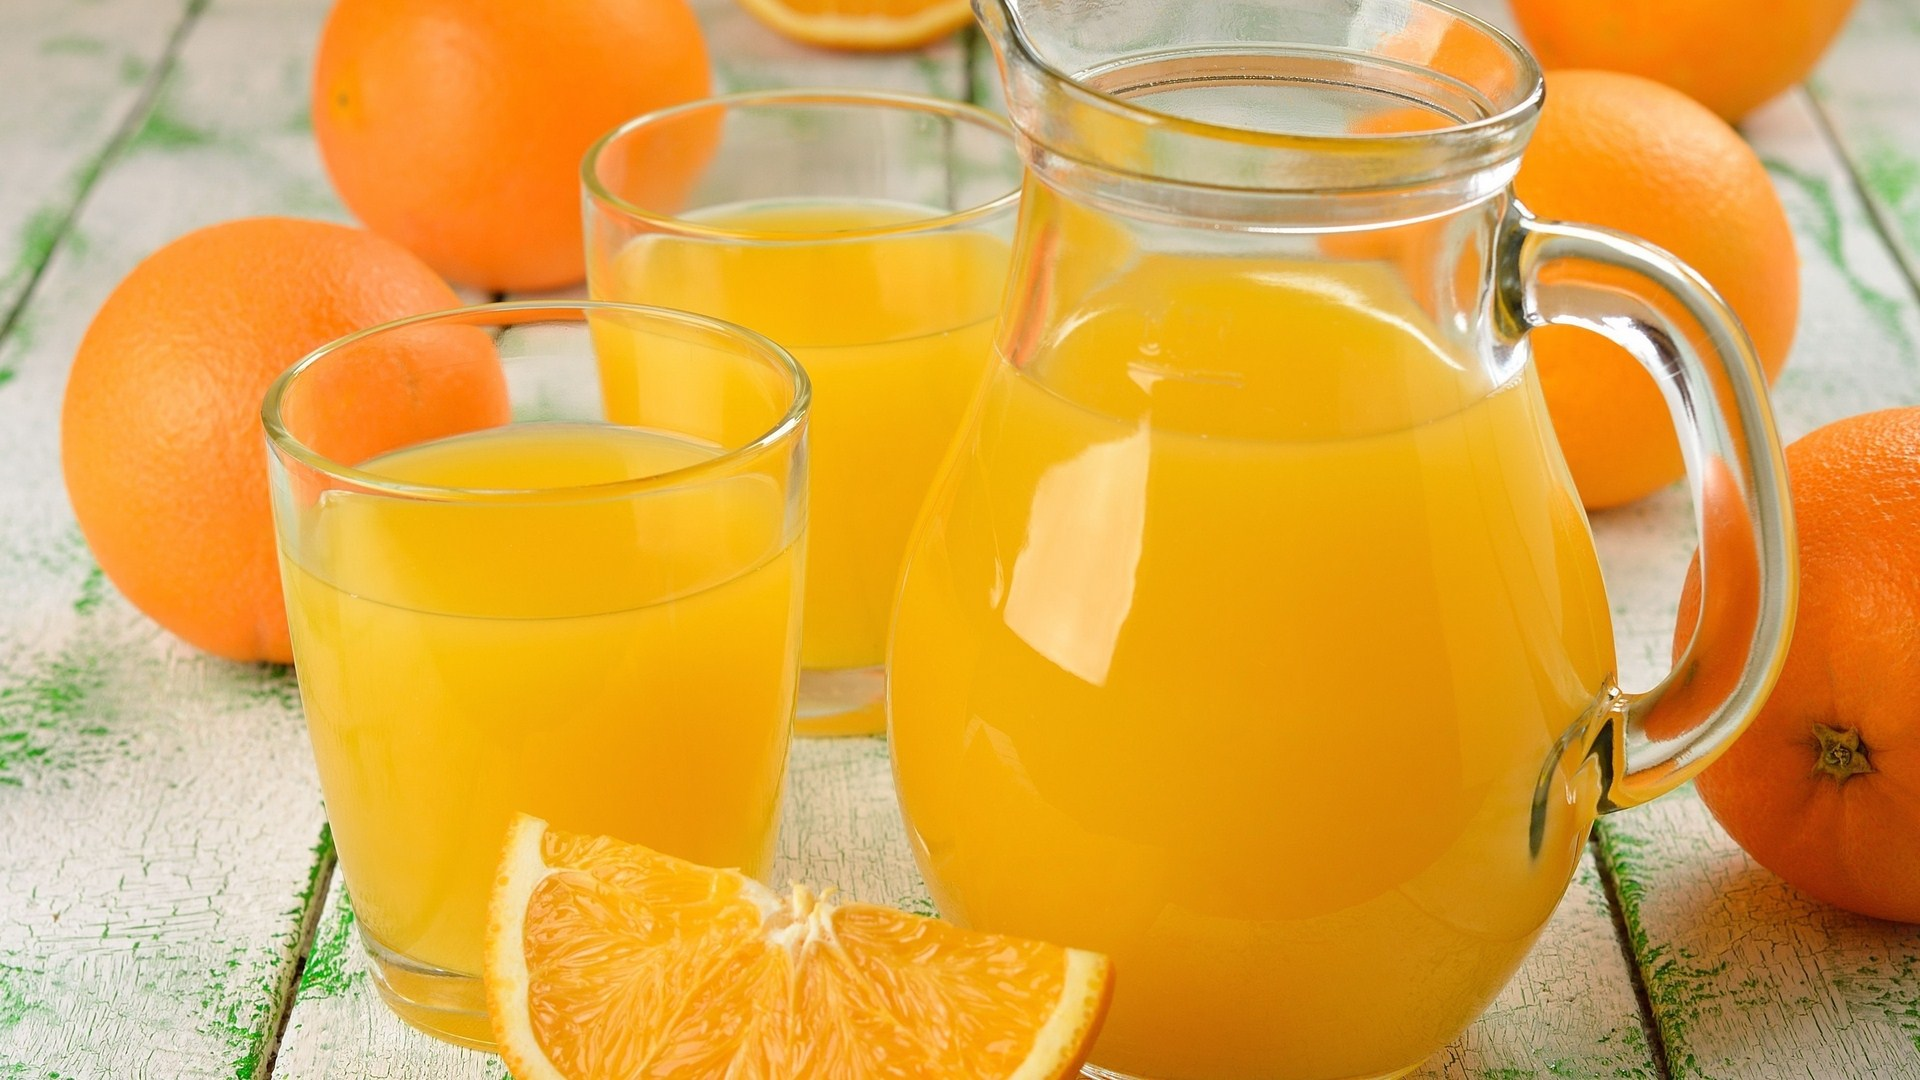 orange-juice-35043-35847-hd-wallpapers